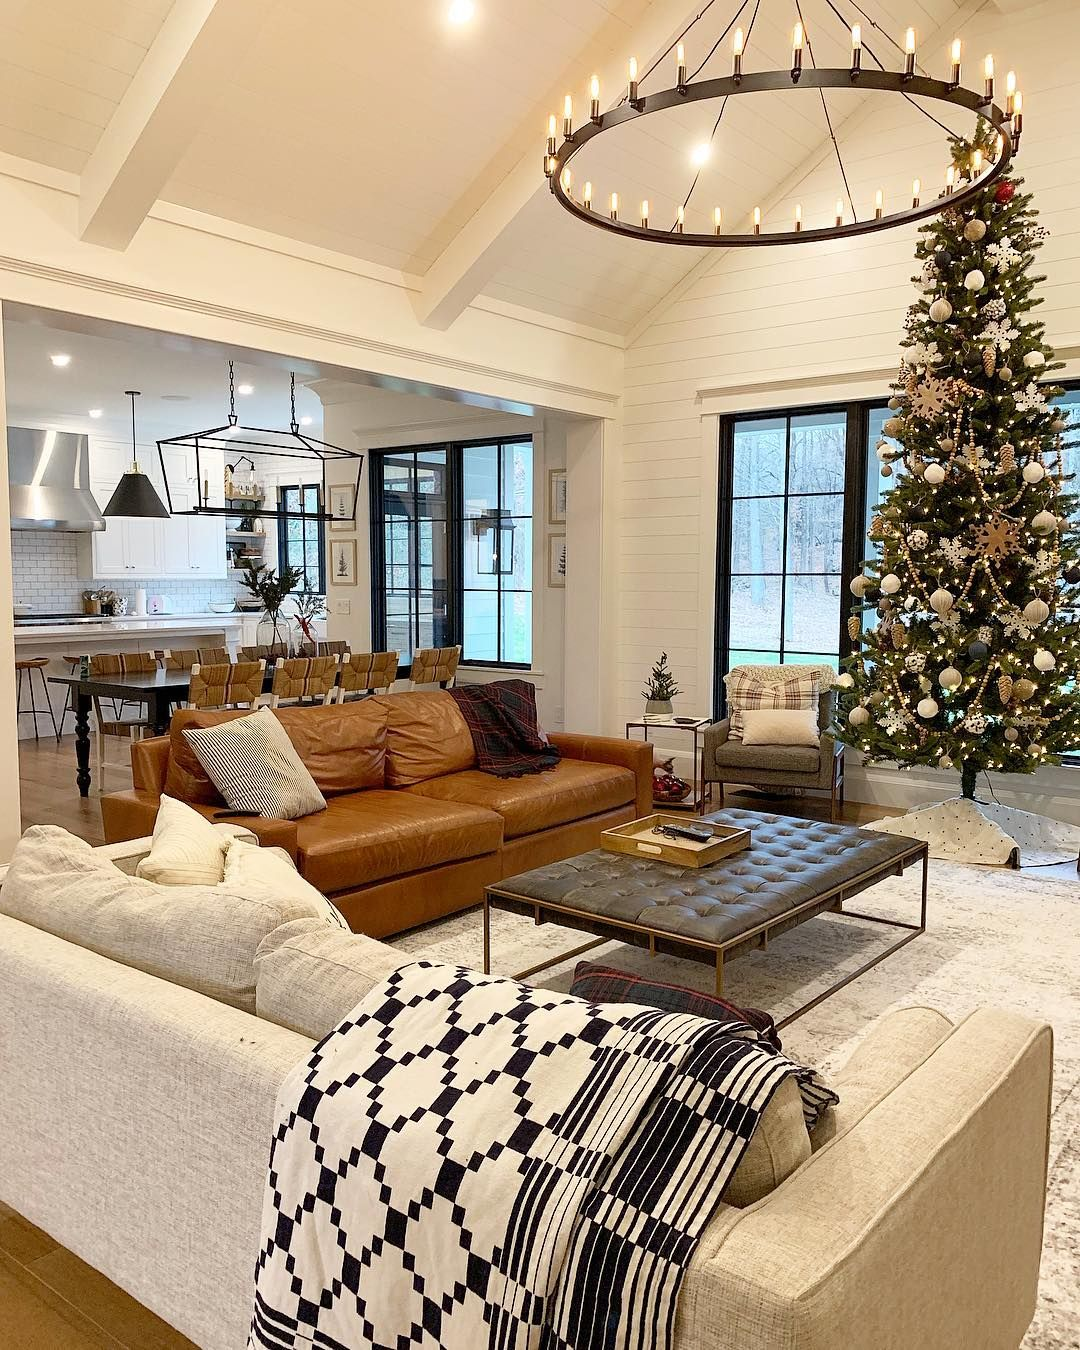 Wood decorations house building new home build on instagram  ci have always wanted  big tall tree also rustic chic living room decoration ideas rh pinterest